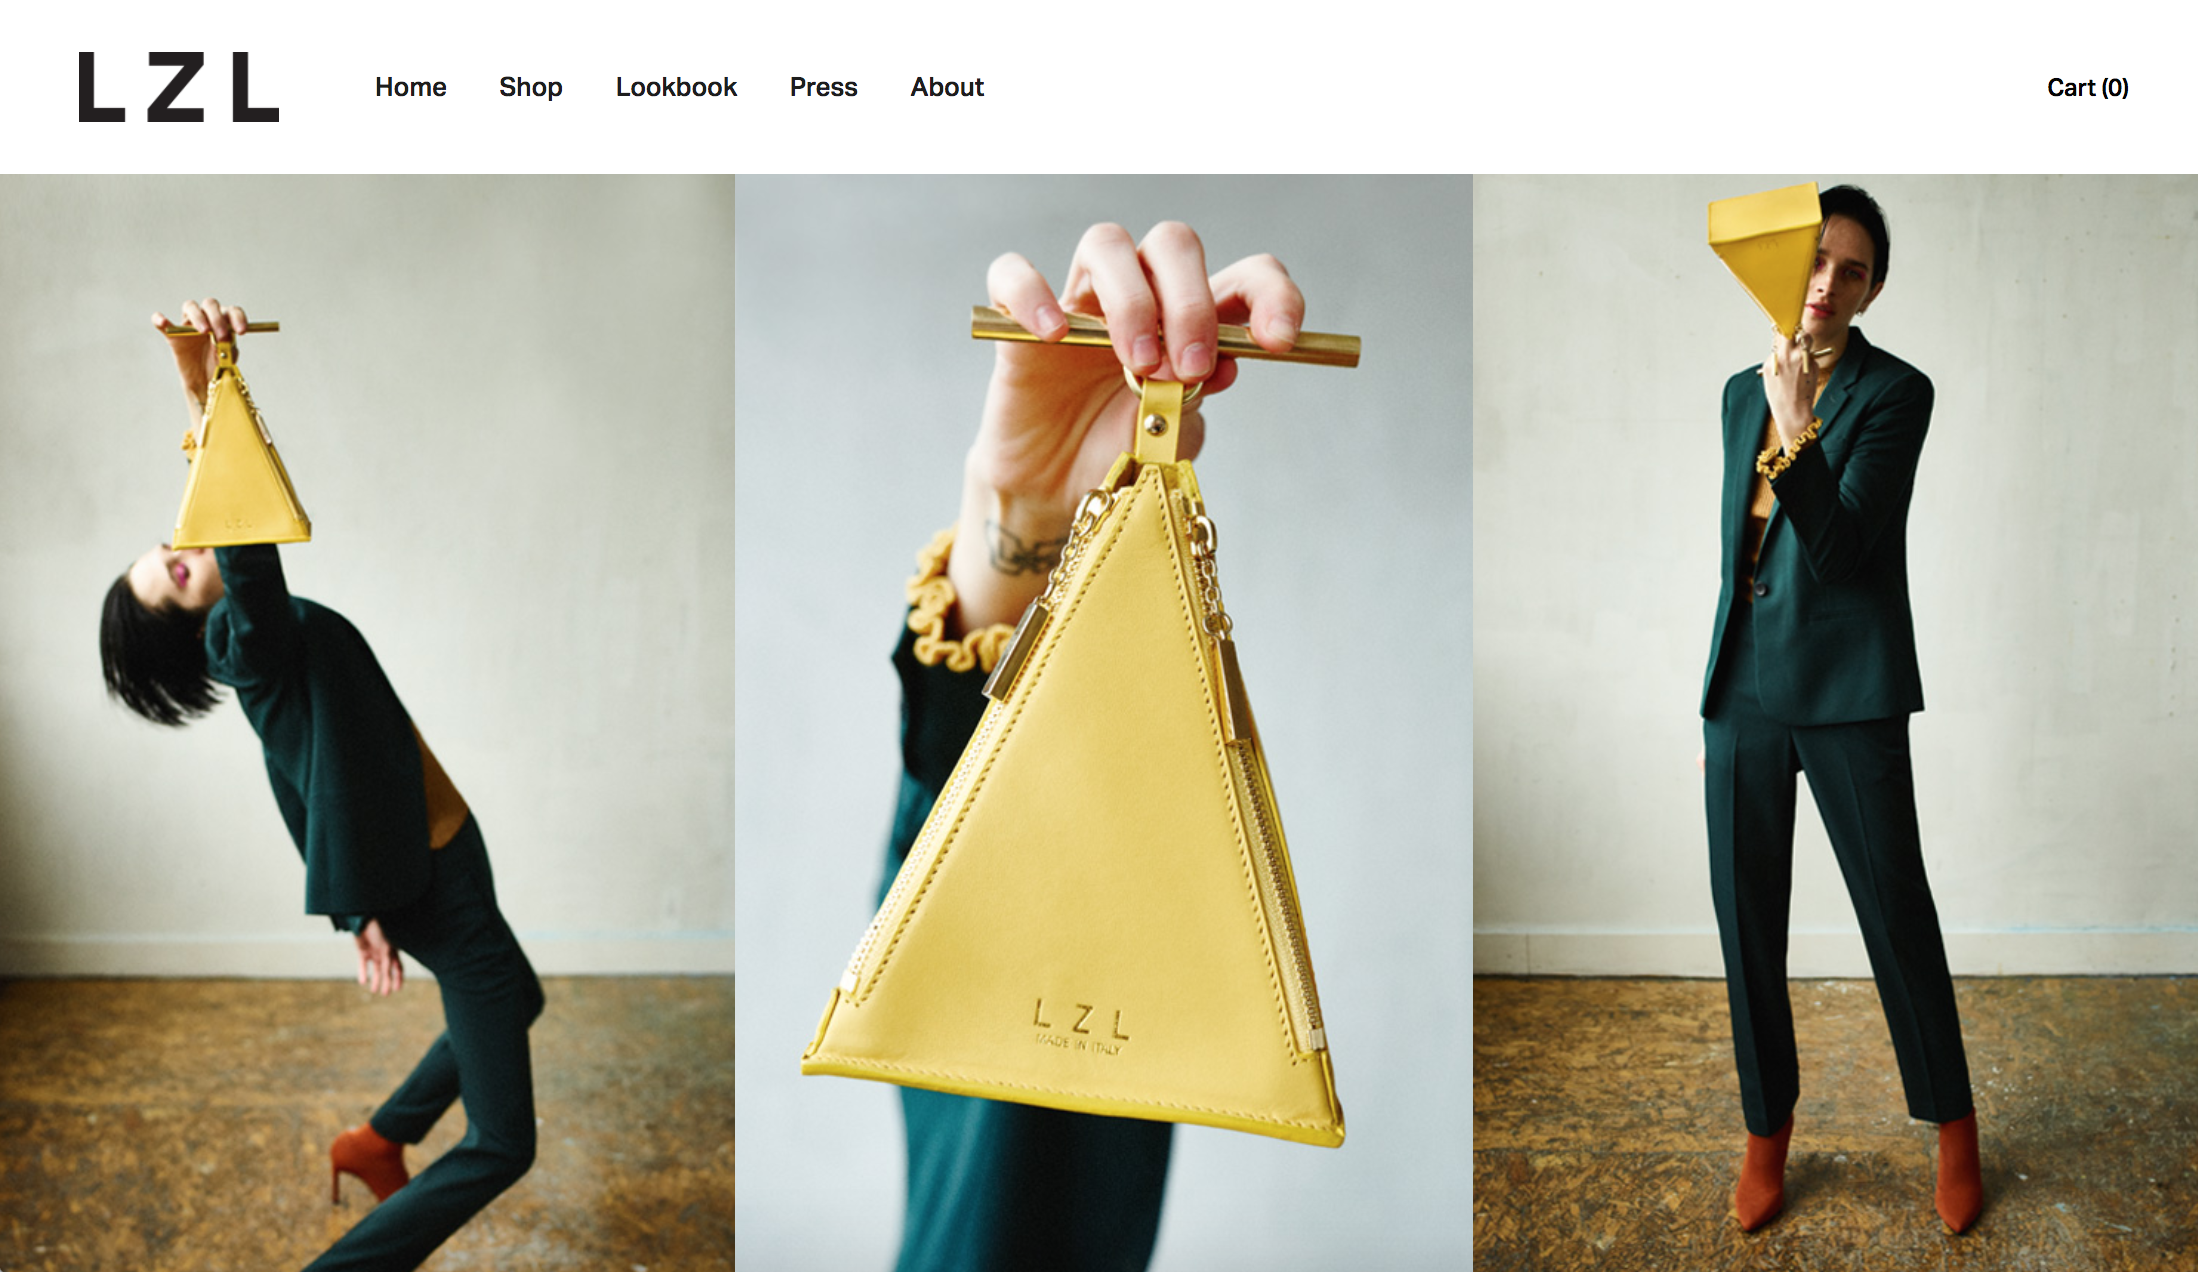 LZL handbags home page image